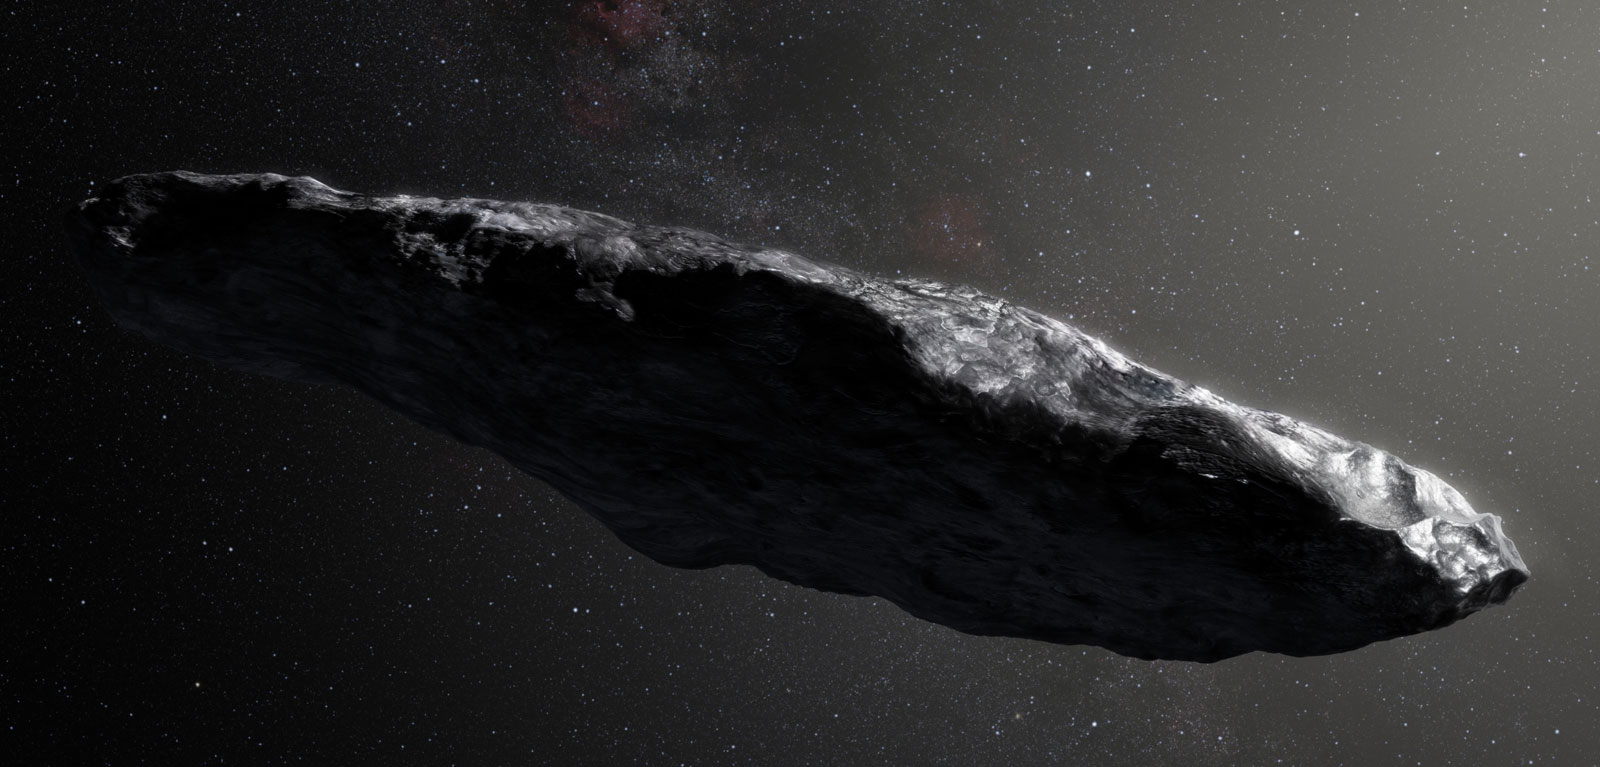 Westlake Legal Group b83fbeb9-oumuamua Mysterious interstellar meteor may have slammed into Earth in 2014 fox-news/science/air-and-space/asteroids fox news fnc/science fnc d87189da-2c7b-5d31-9539-5e1bb88aa7e4 Chris Ciaccia article